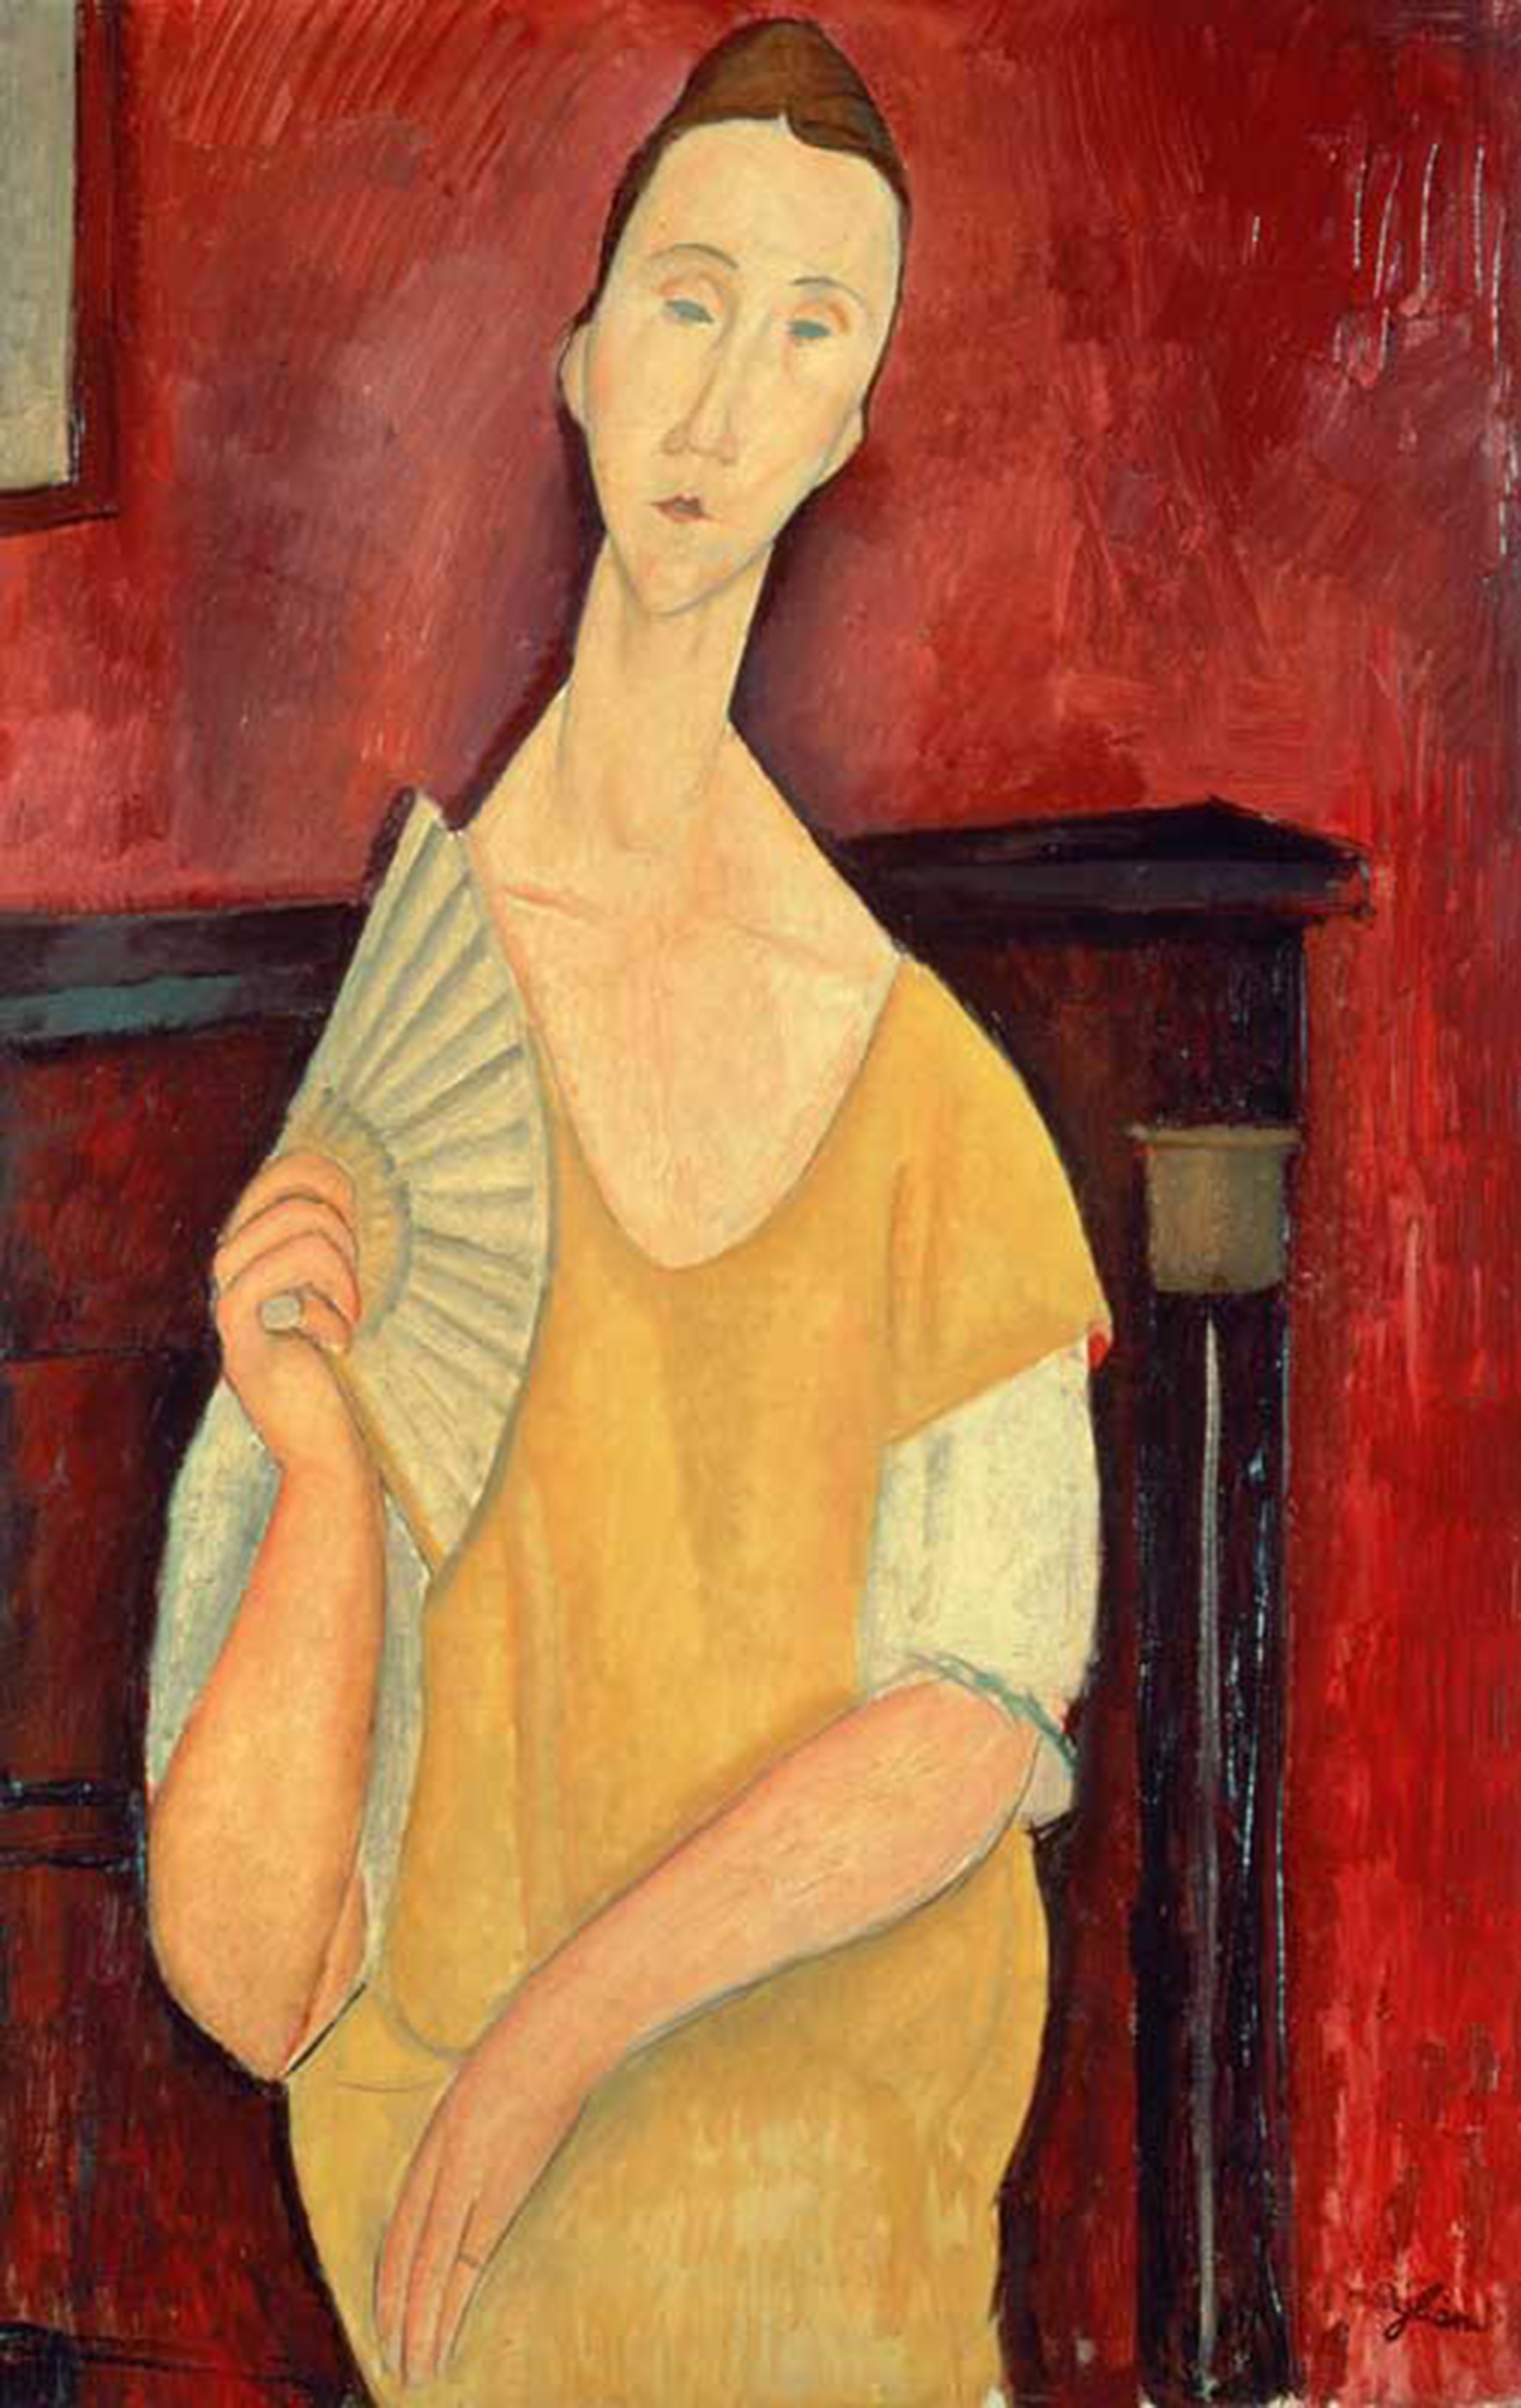 XIR96791   Credit: Woman with a Fan (Lunia Czechowska) 1919 (oil on canvas) by Modigliani, Amedeo (1884-1920)  Musee d'Art Moderne de la Ville de Paris, Paris, France/ Giraudon/ The Bridgeman Art Library  Nationality / copyright status: Italian / out of c (Foto: Reprodução)